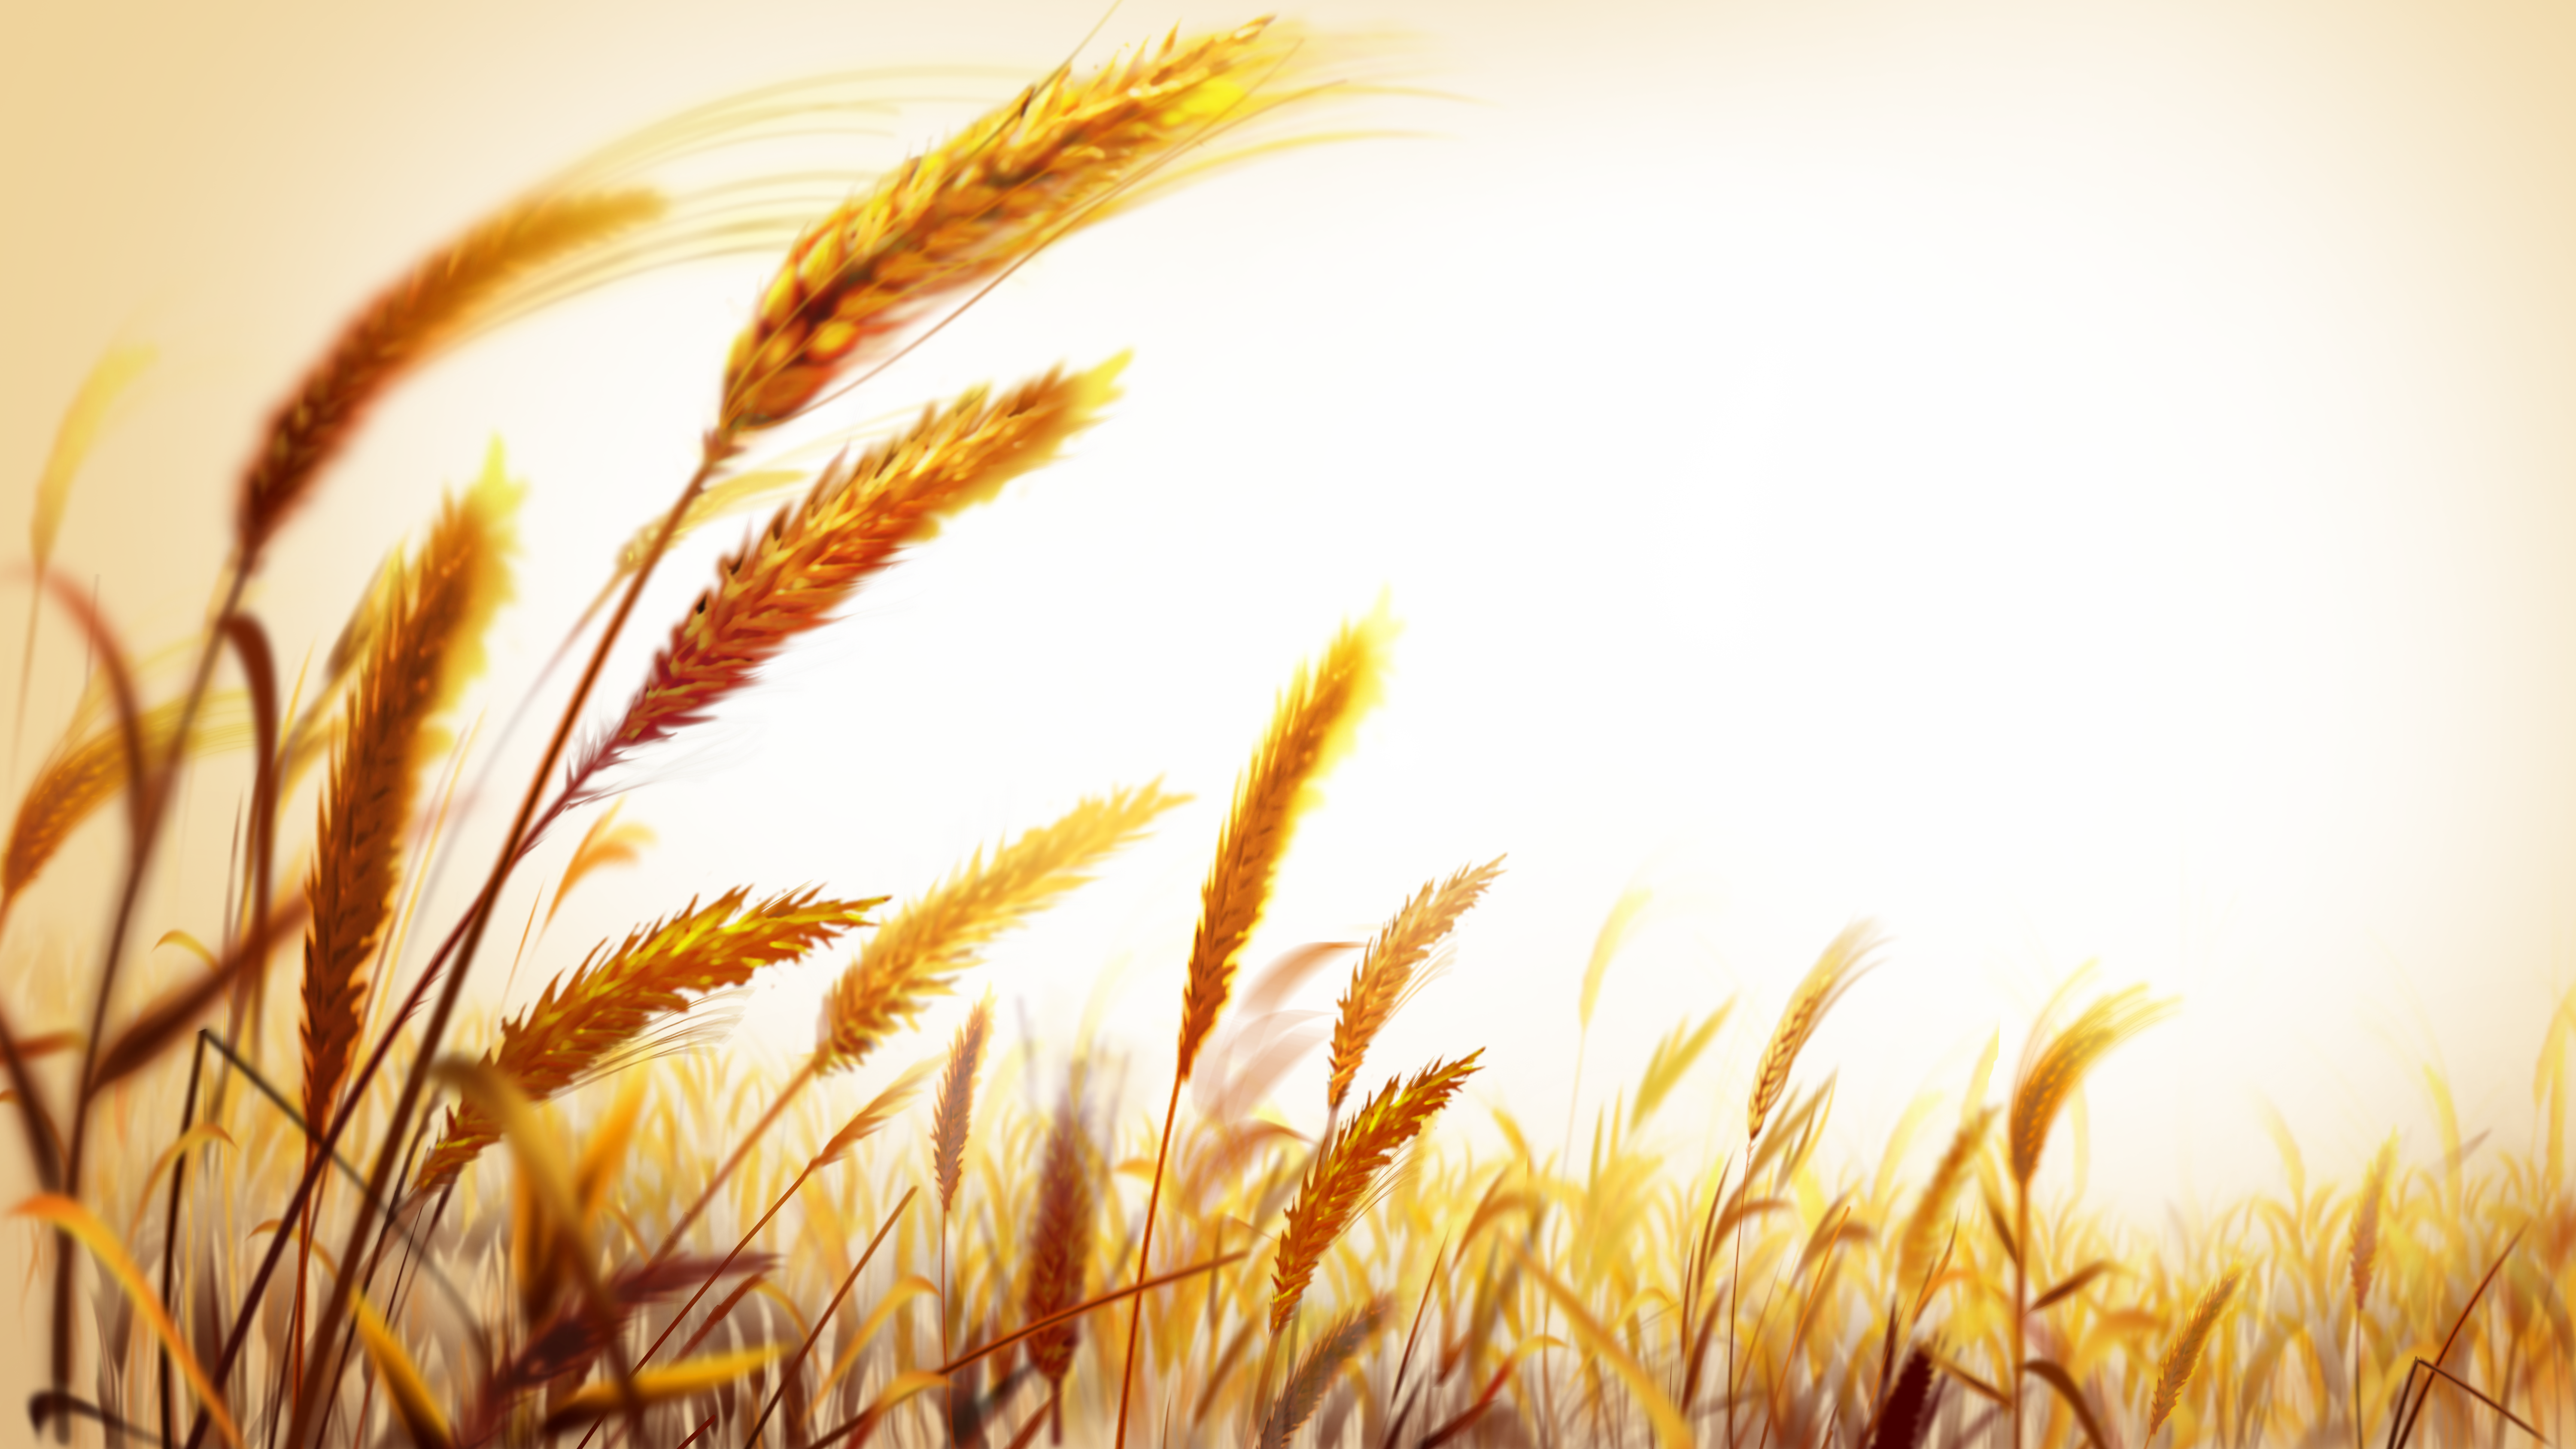 Wheat field png. Wallpaper beautiful golden transprent